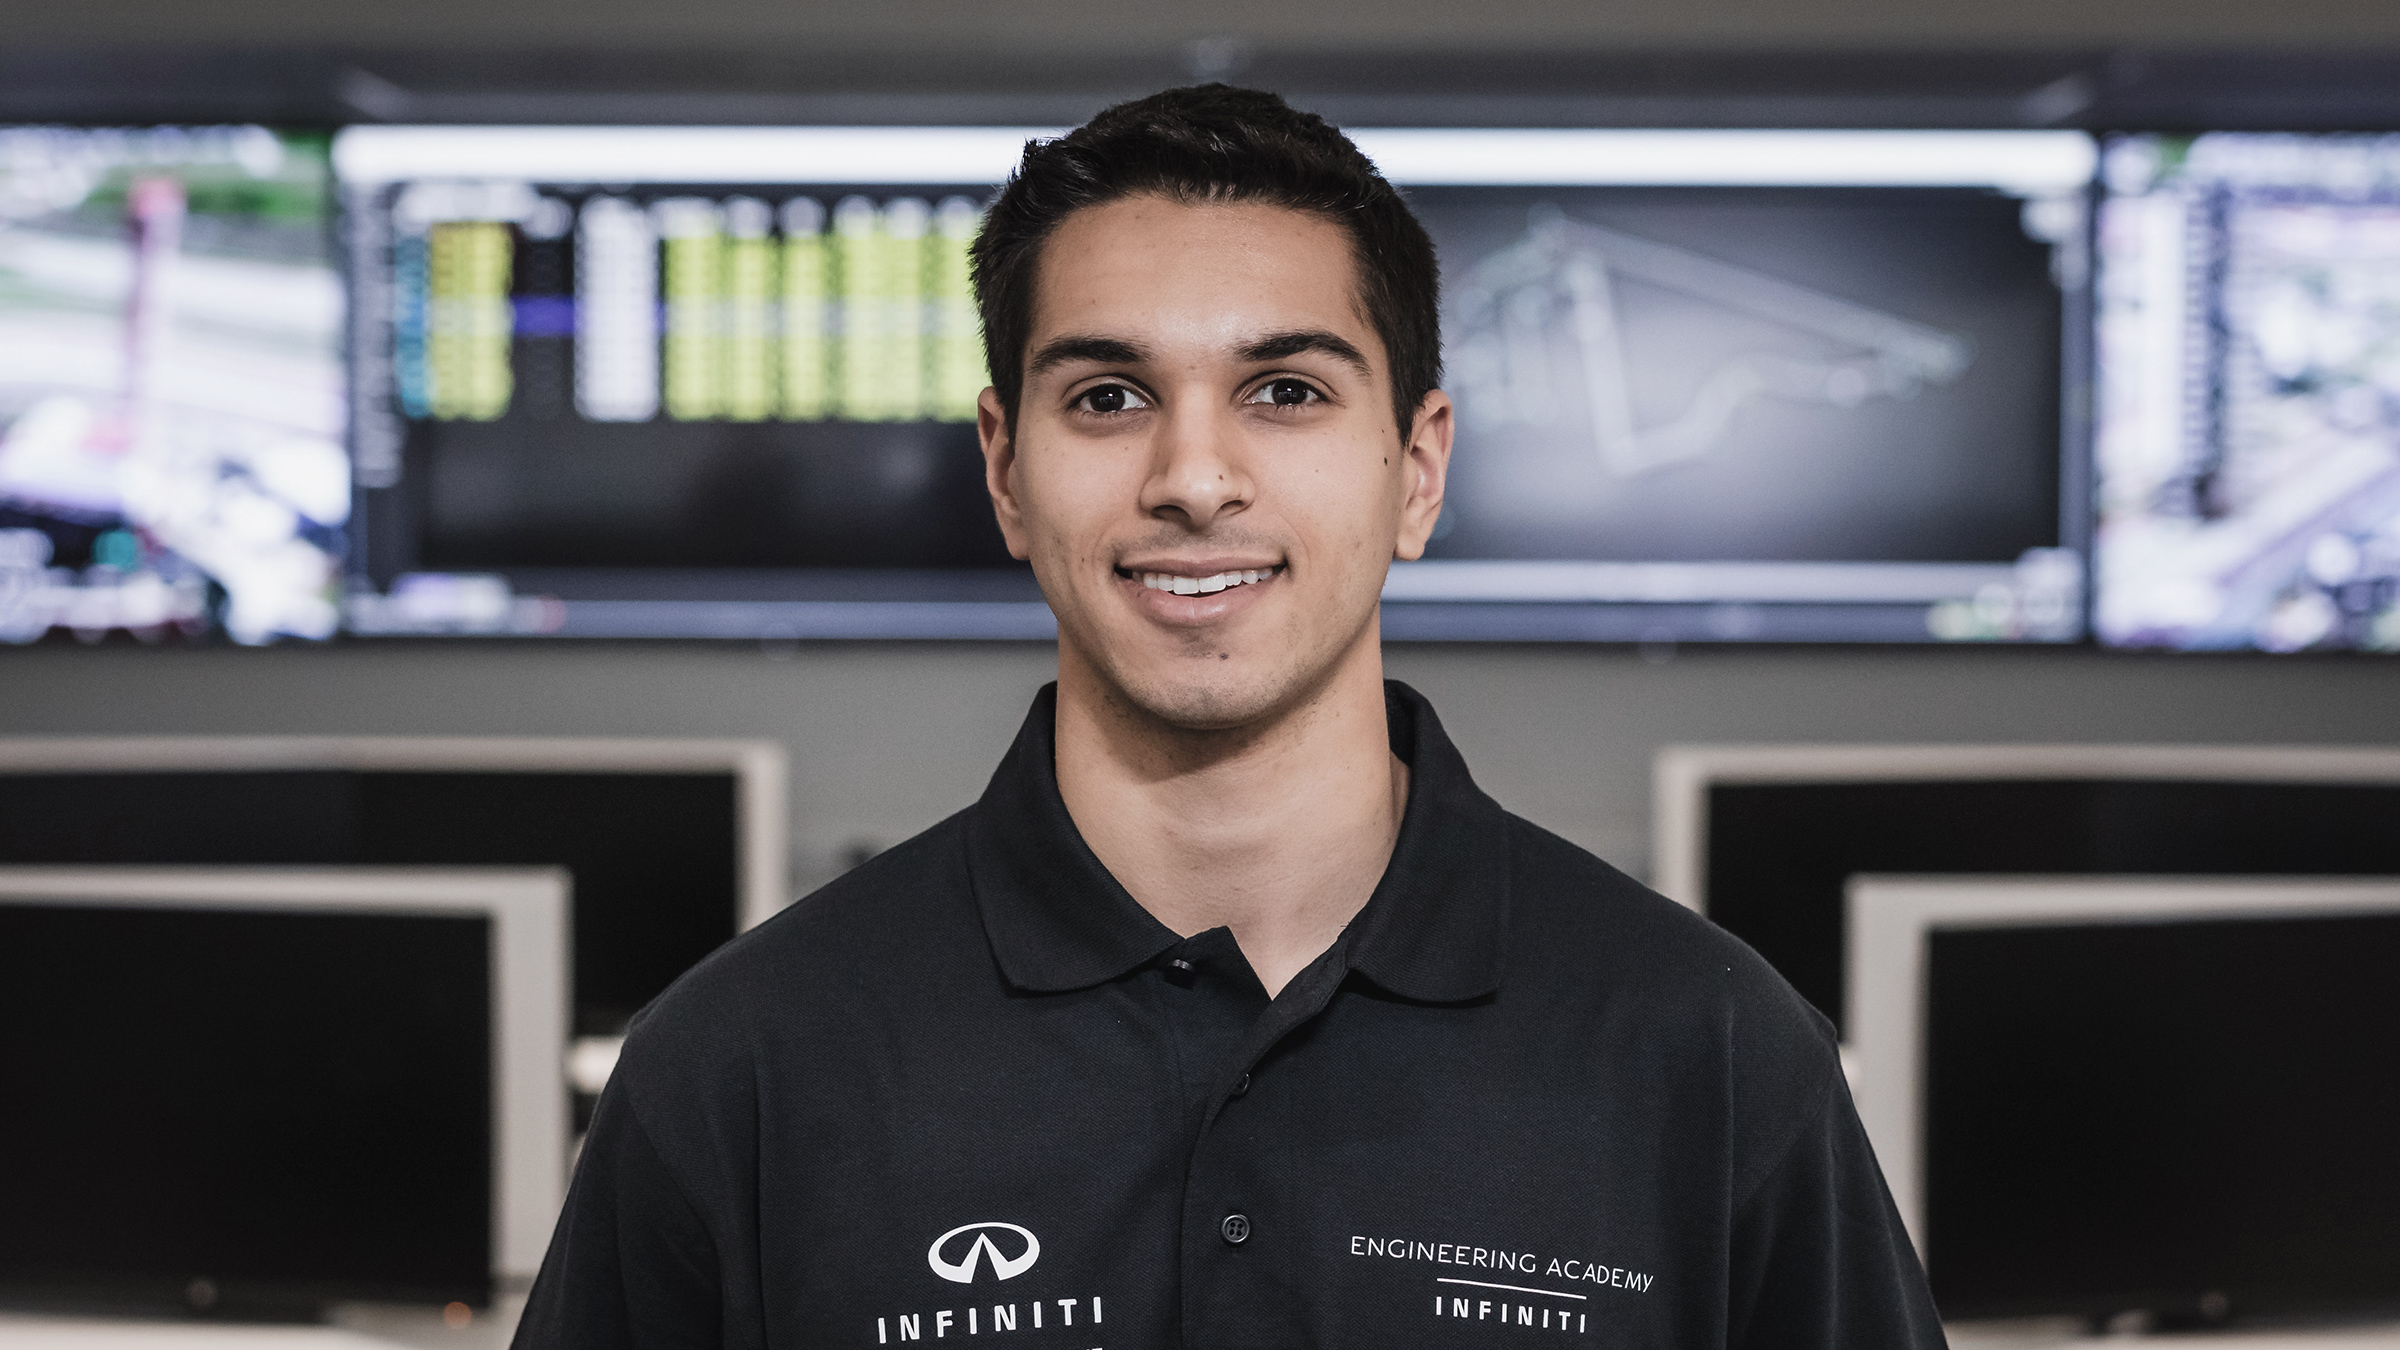 INFINITI Engineering Academy 2019 Engineer Chase Pelletier Profile